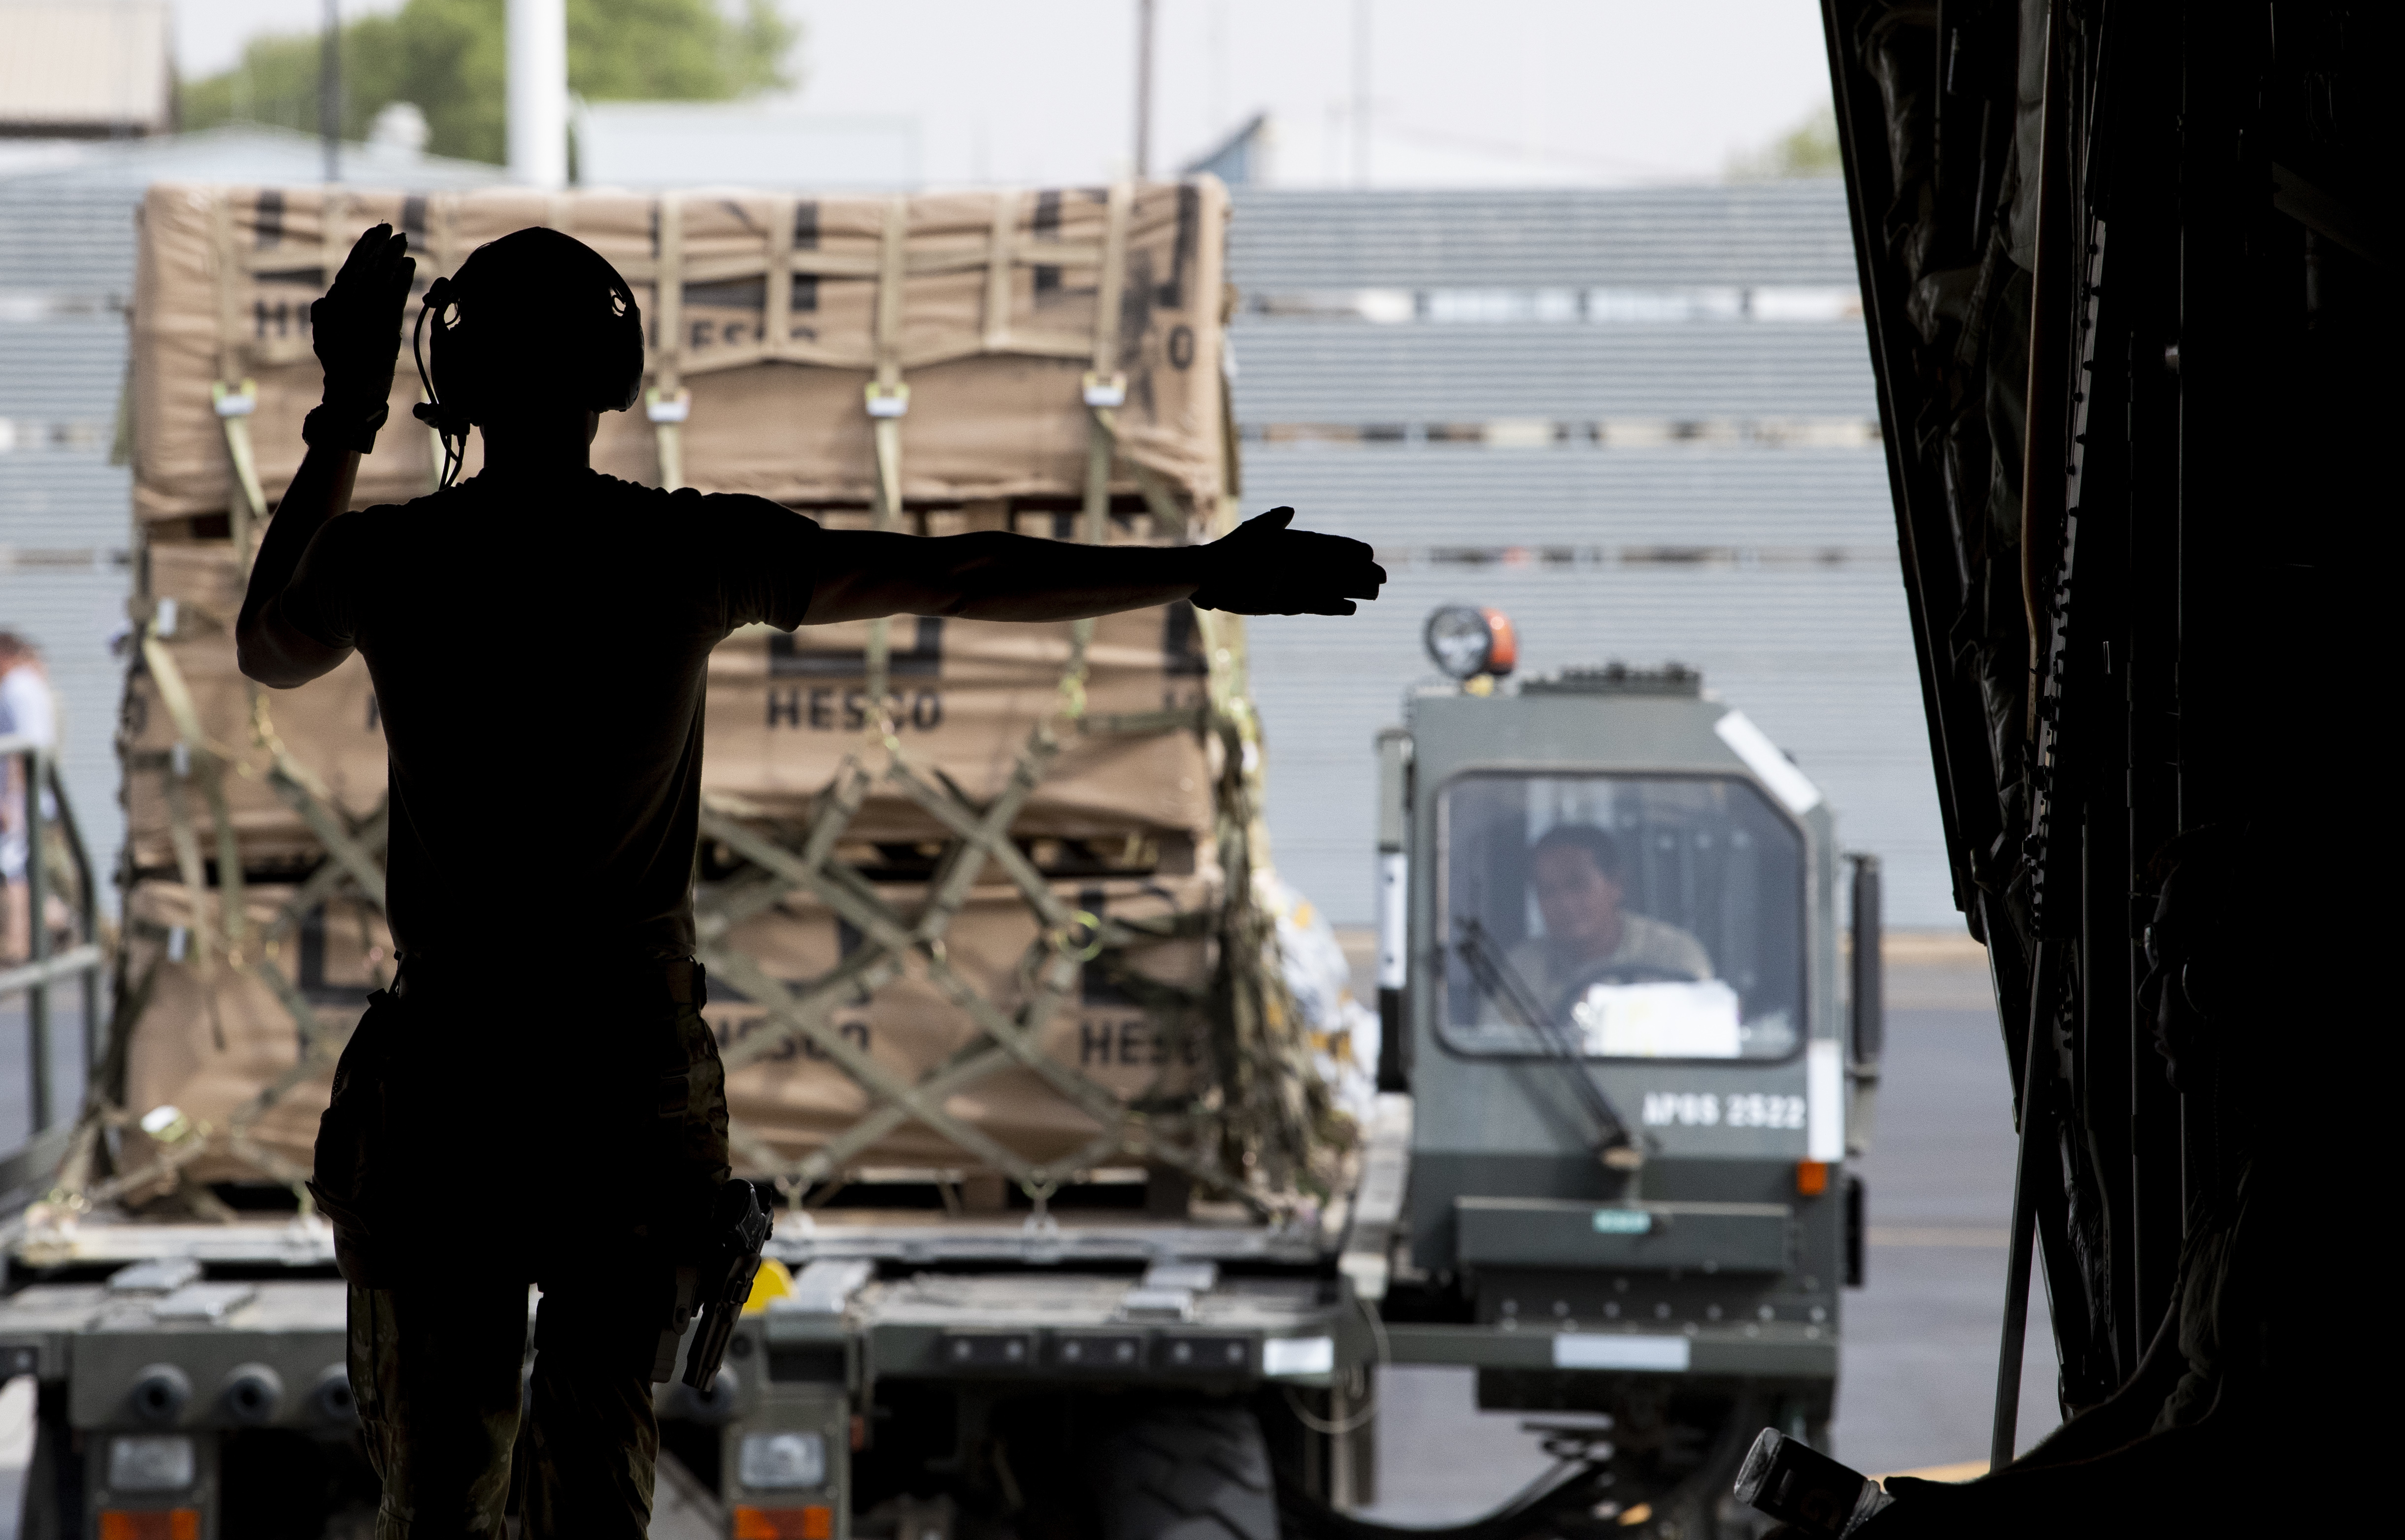 A service member directs material handling equipment loaded with cargo onto the ramp of an aircraft.